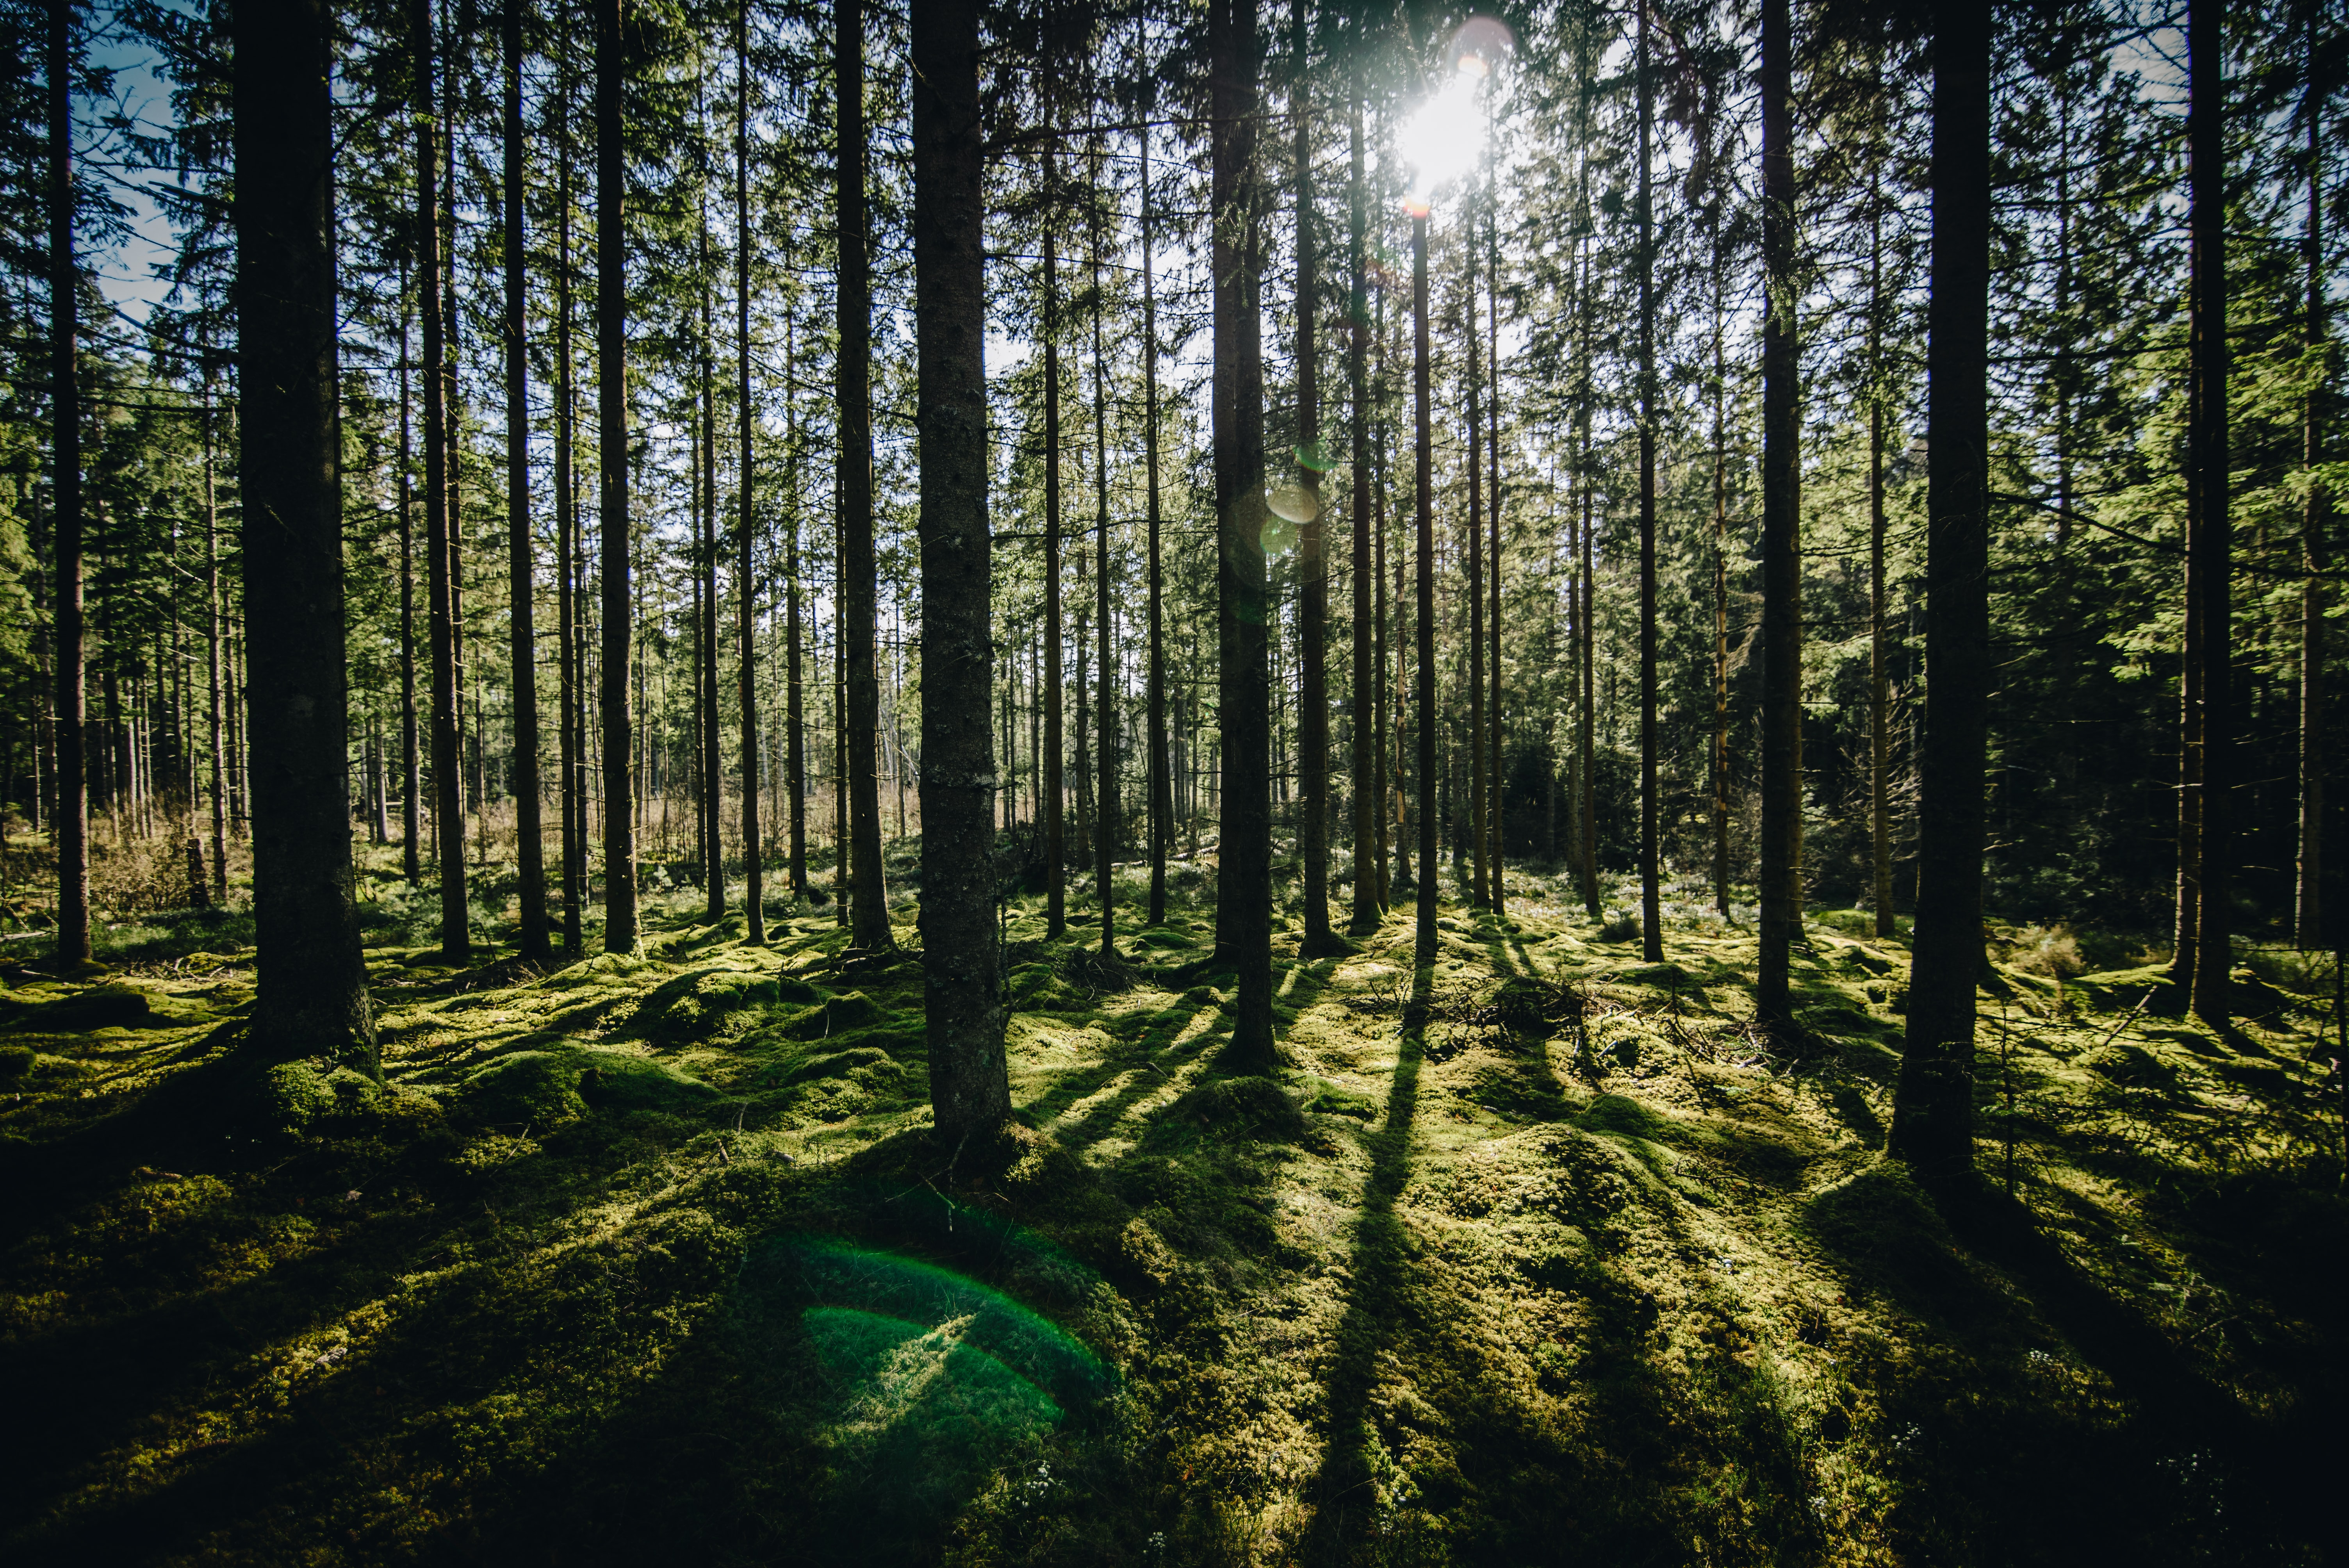 forest during daytime